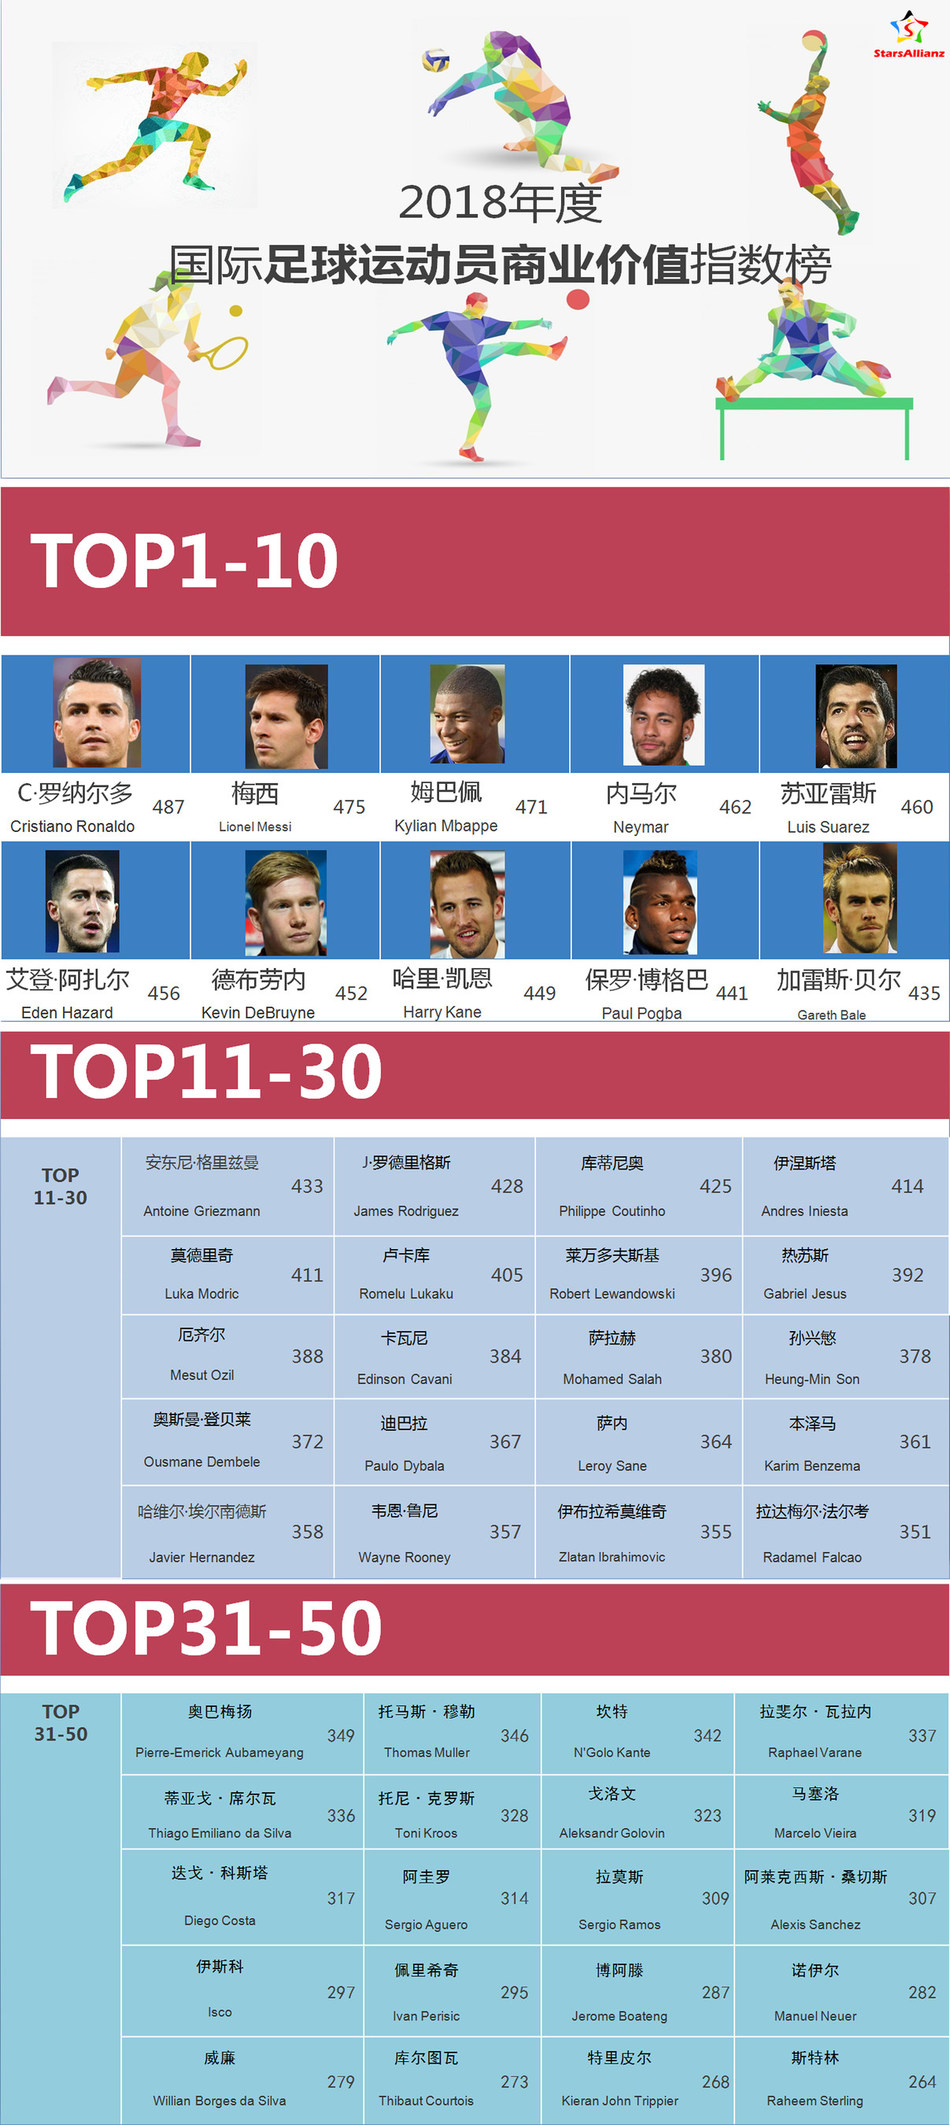 2018 International Football Players Commercial Value Index Rankings